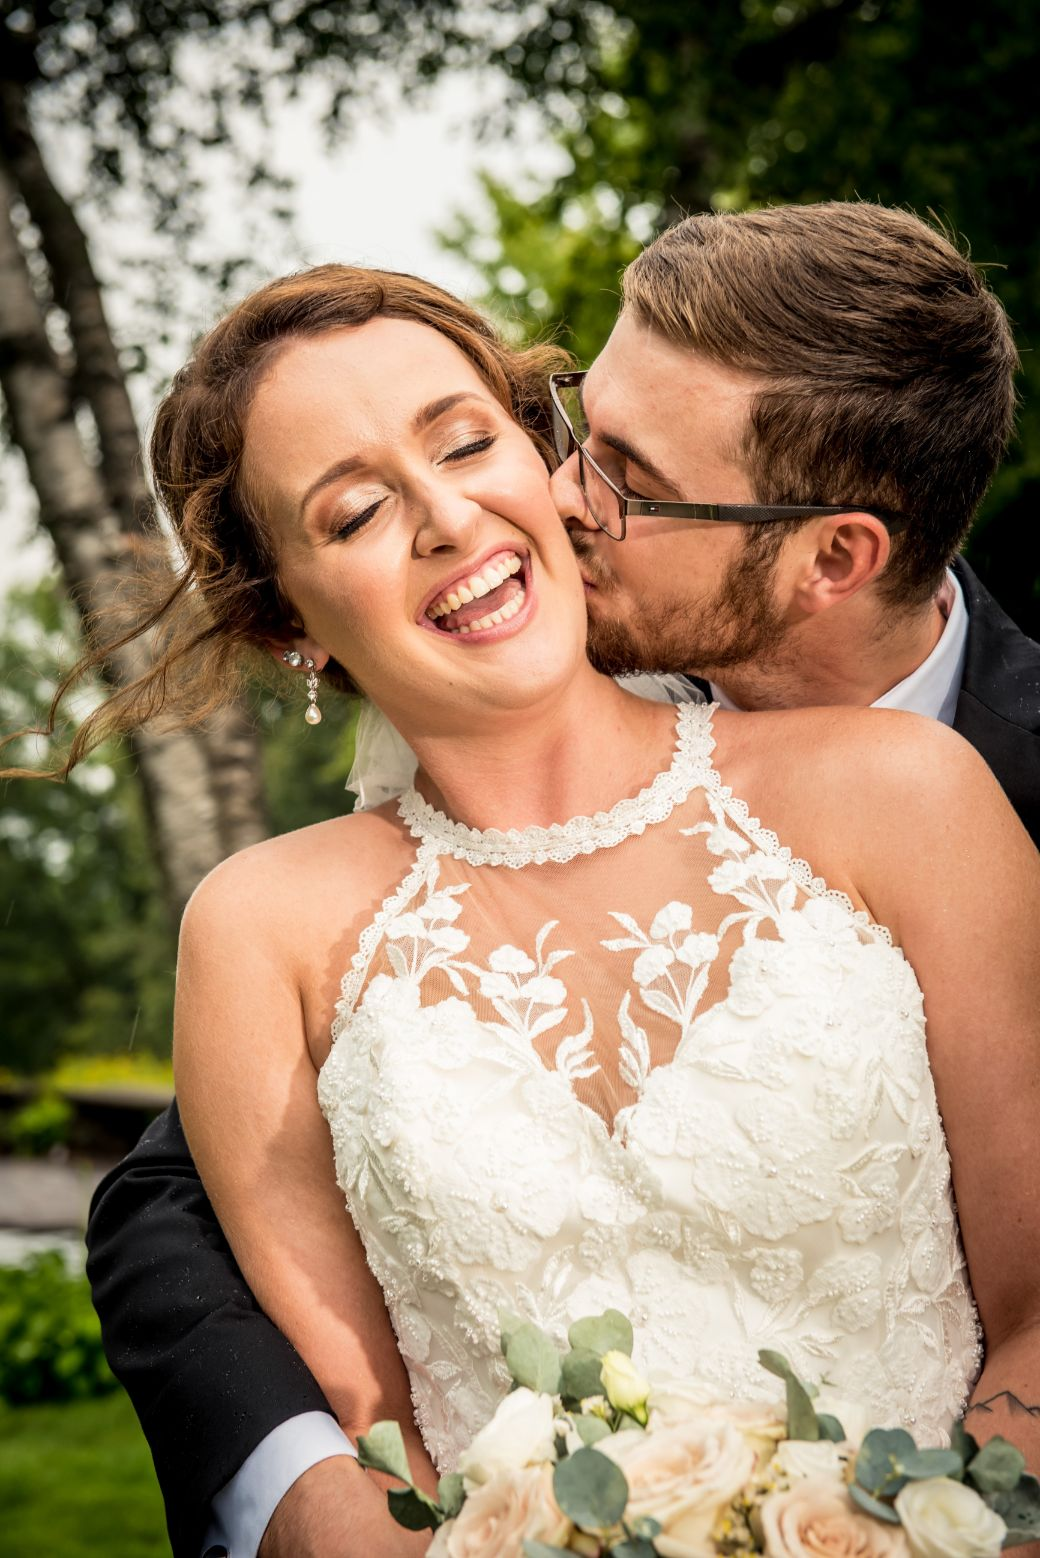 bride laughing while groom kisses her cheek